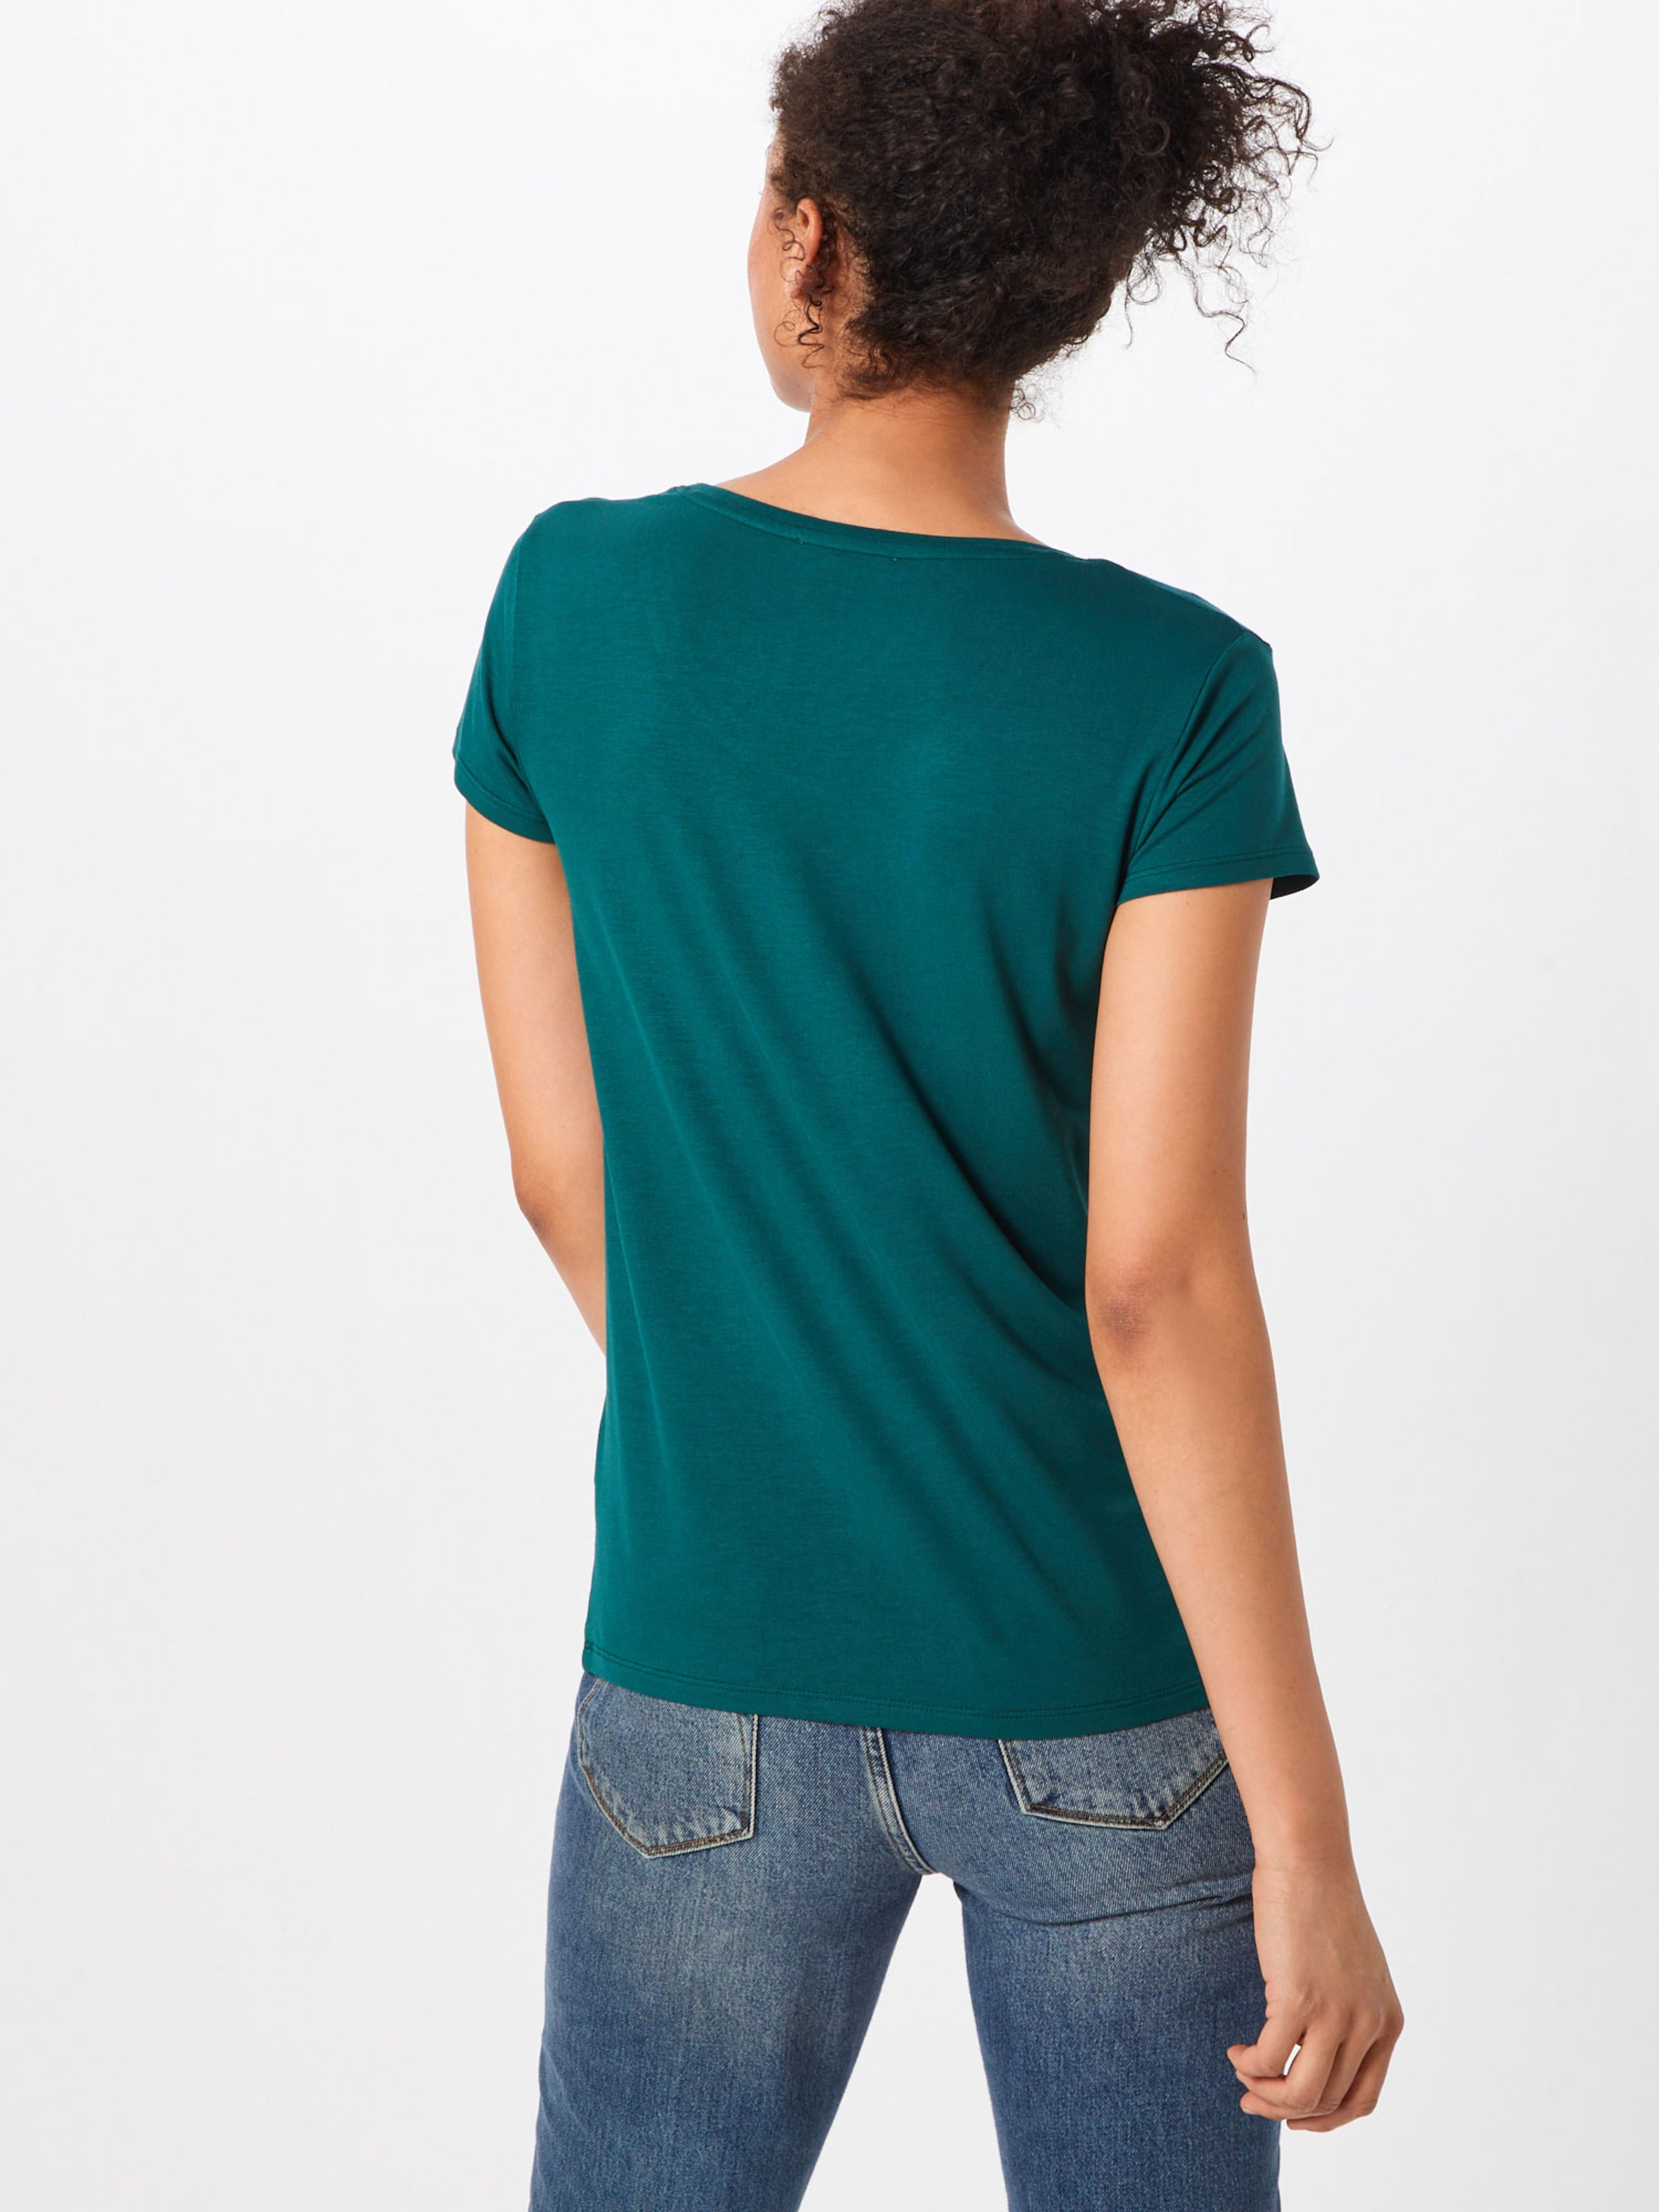 About You 'darina' Shirt In Smaragd bf7ygY6v